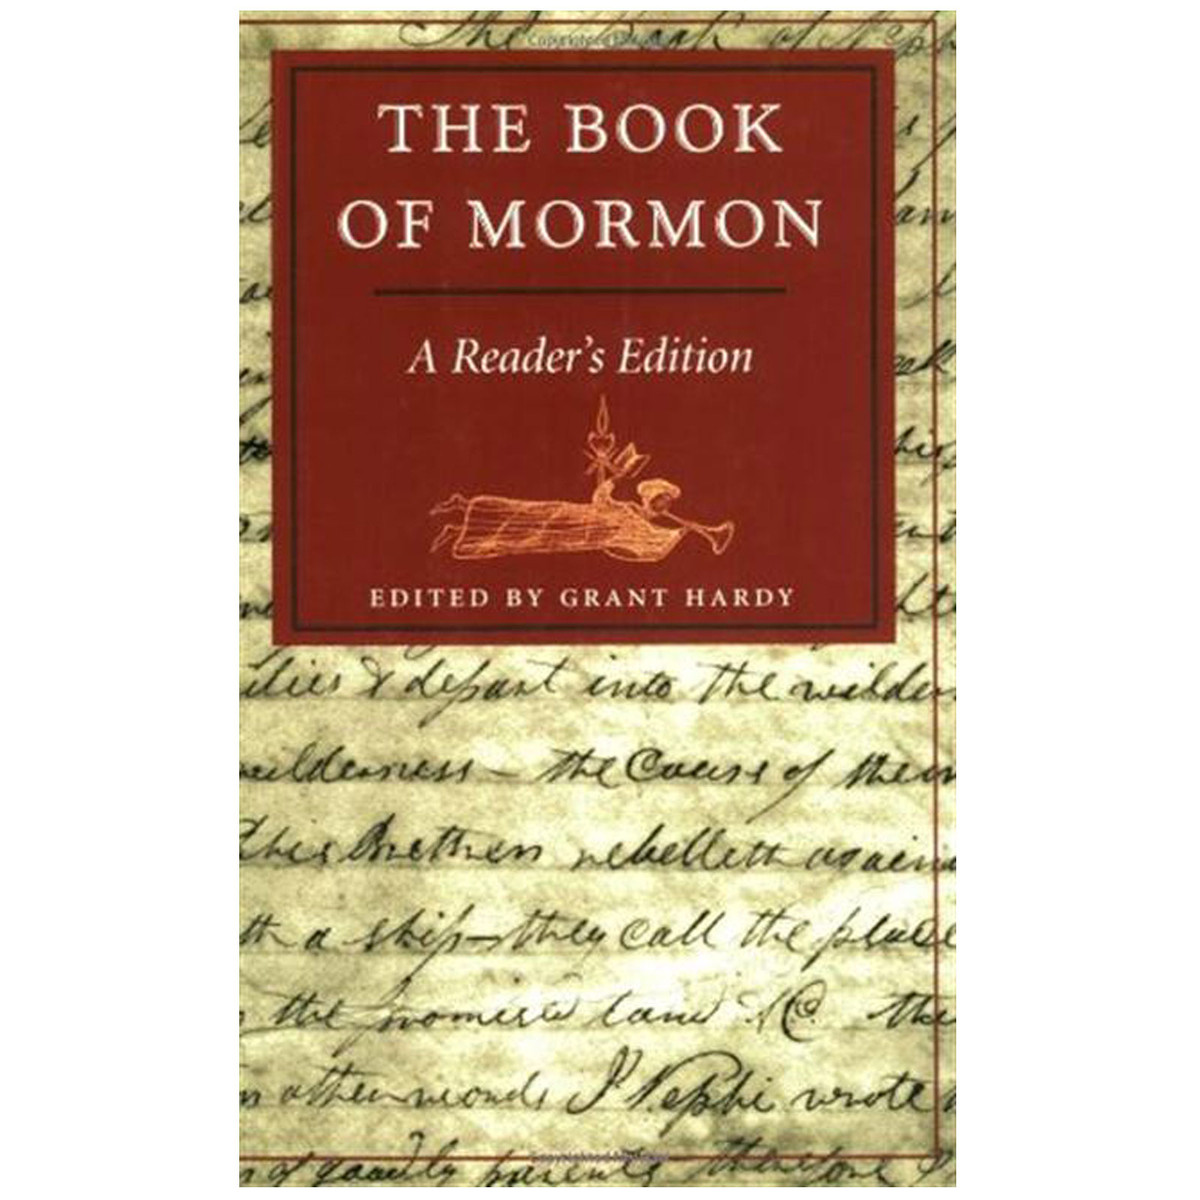 The Book Of Mormon: A Reader's Edition Edited By Grant Hardy